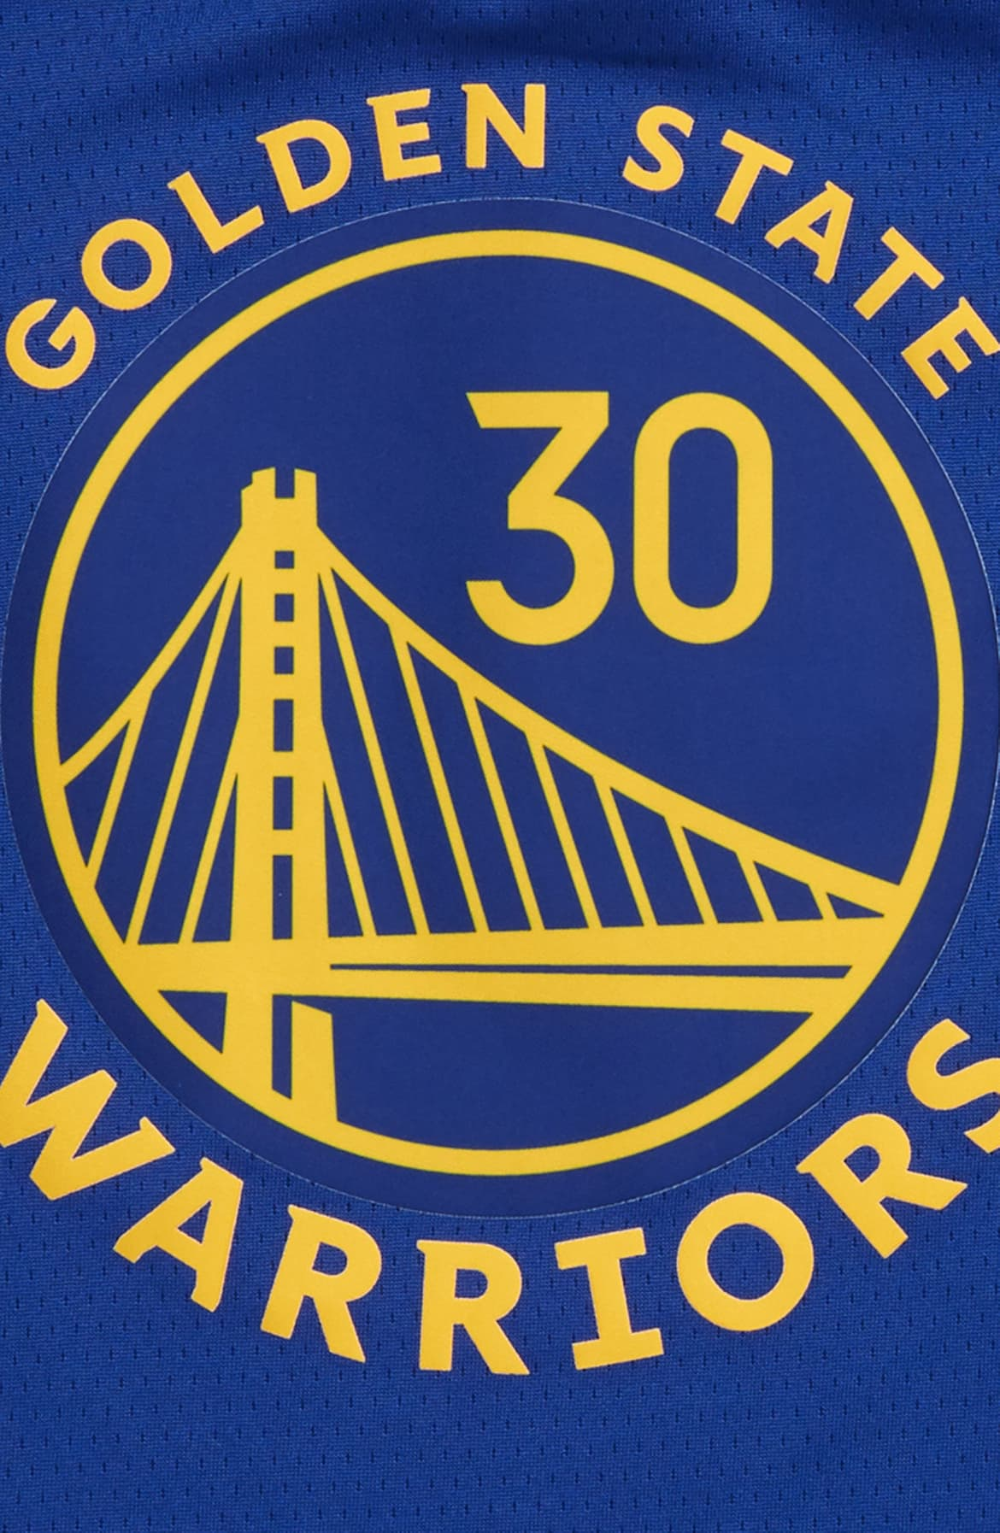 Nike Nba Golden State Warriors Stephen Curry Basketball Jersey Big Boys Nordstrom Stephen Curry Basketball Nba Golden State Warriors Warriors Stephen Curry